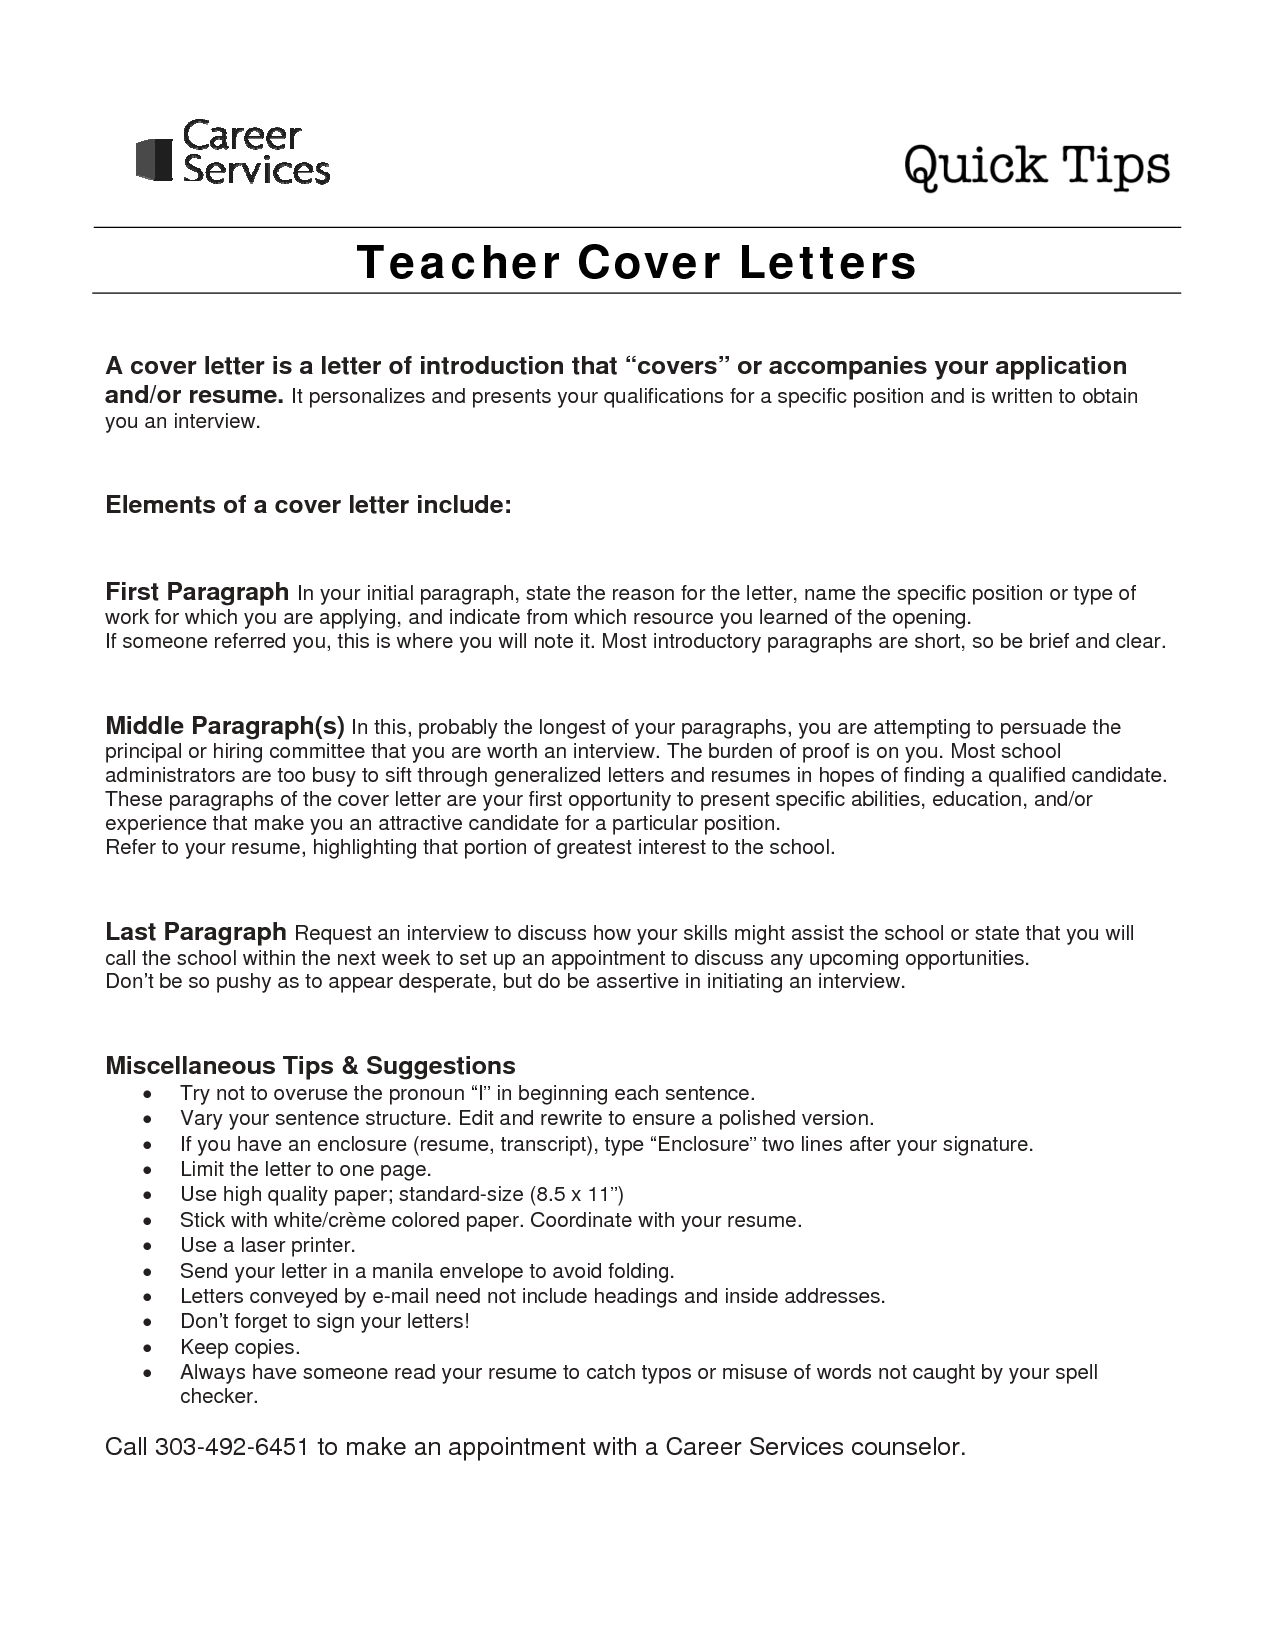 [ Letter Samples Cover Mistakes Faq About Builder Teachers Resume Template  For Sample Inside Teaching ]   Best Free Home Design Idea U0026 Inspiration  Good Example Of A Cover Letter